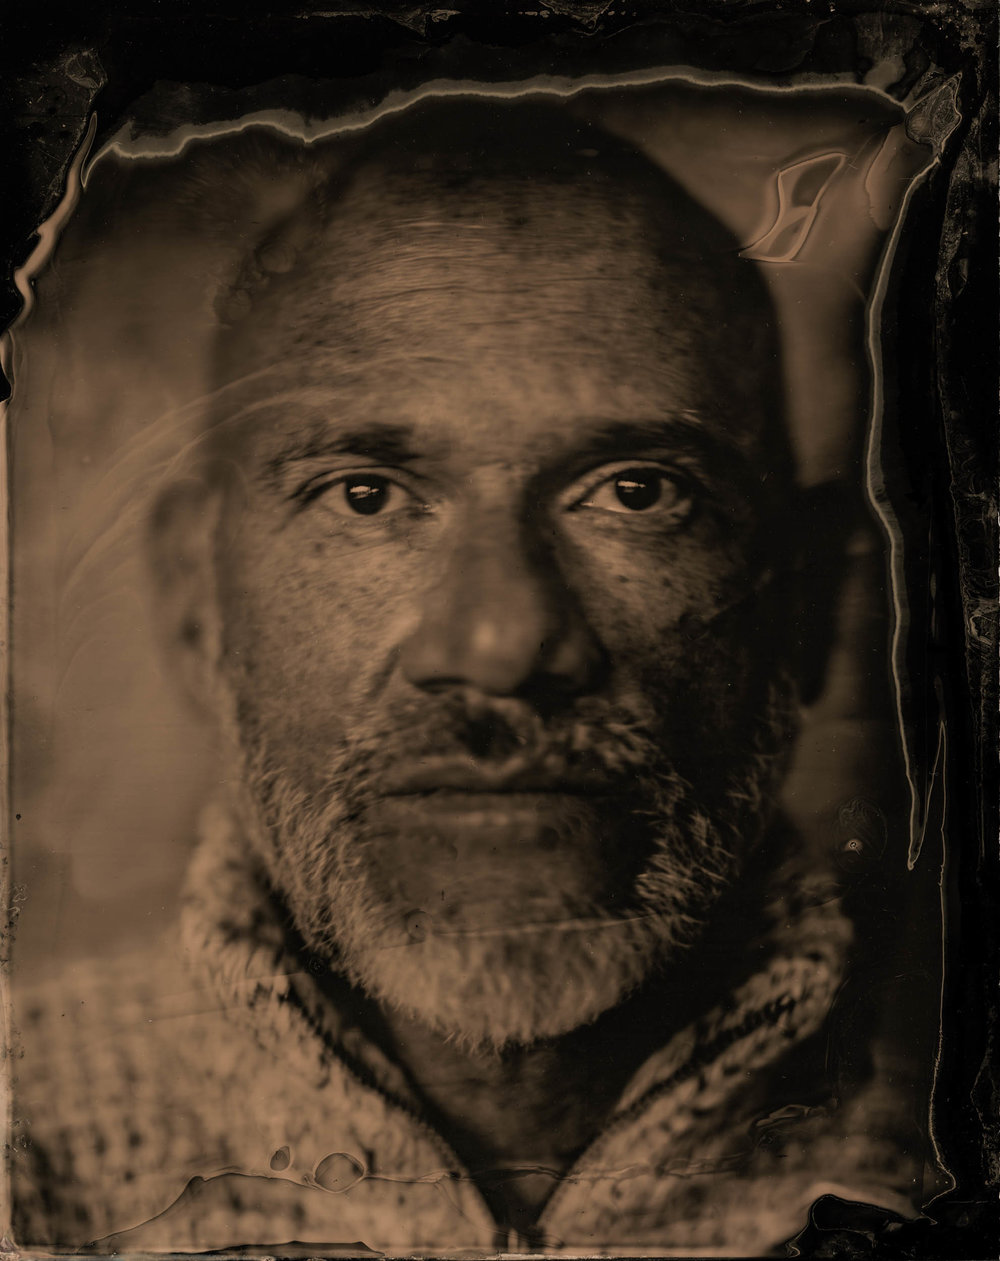 The Faces of Many, ambrotype original, archival pigment print, 40 in. x 50 in., 2018